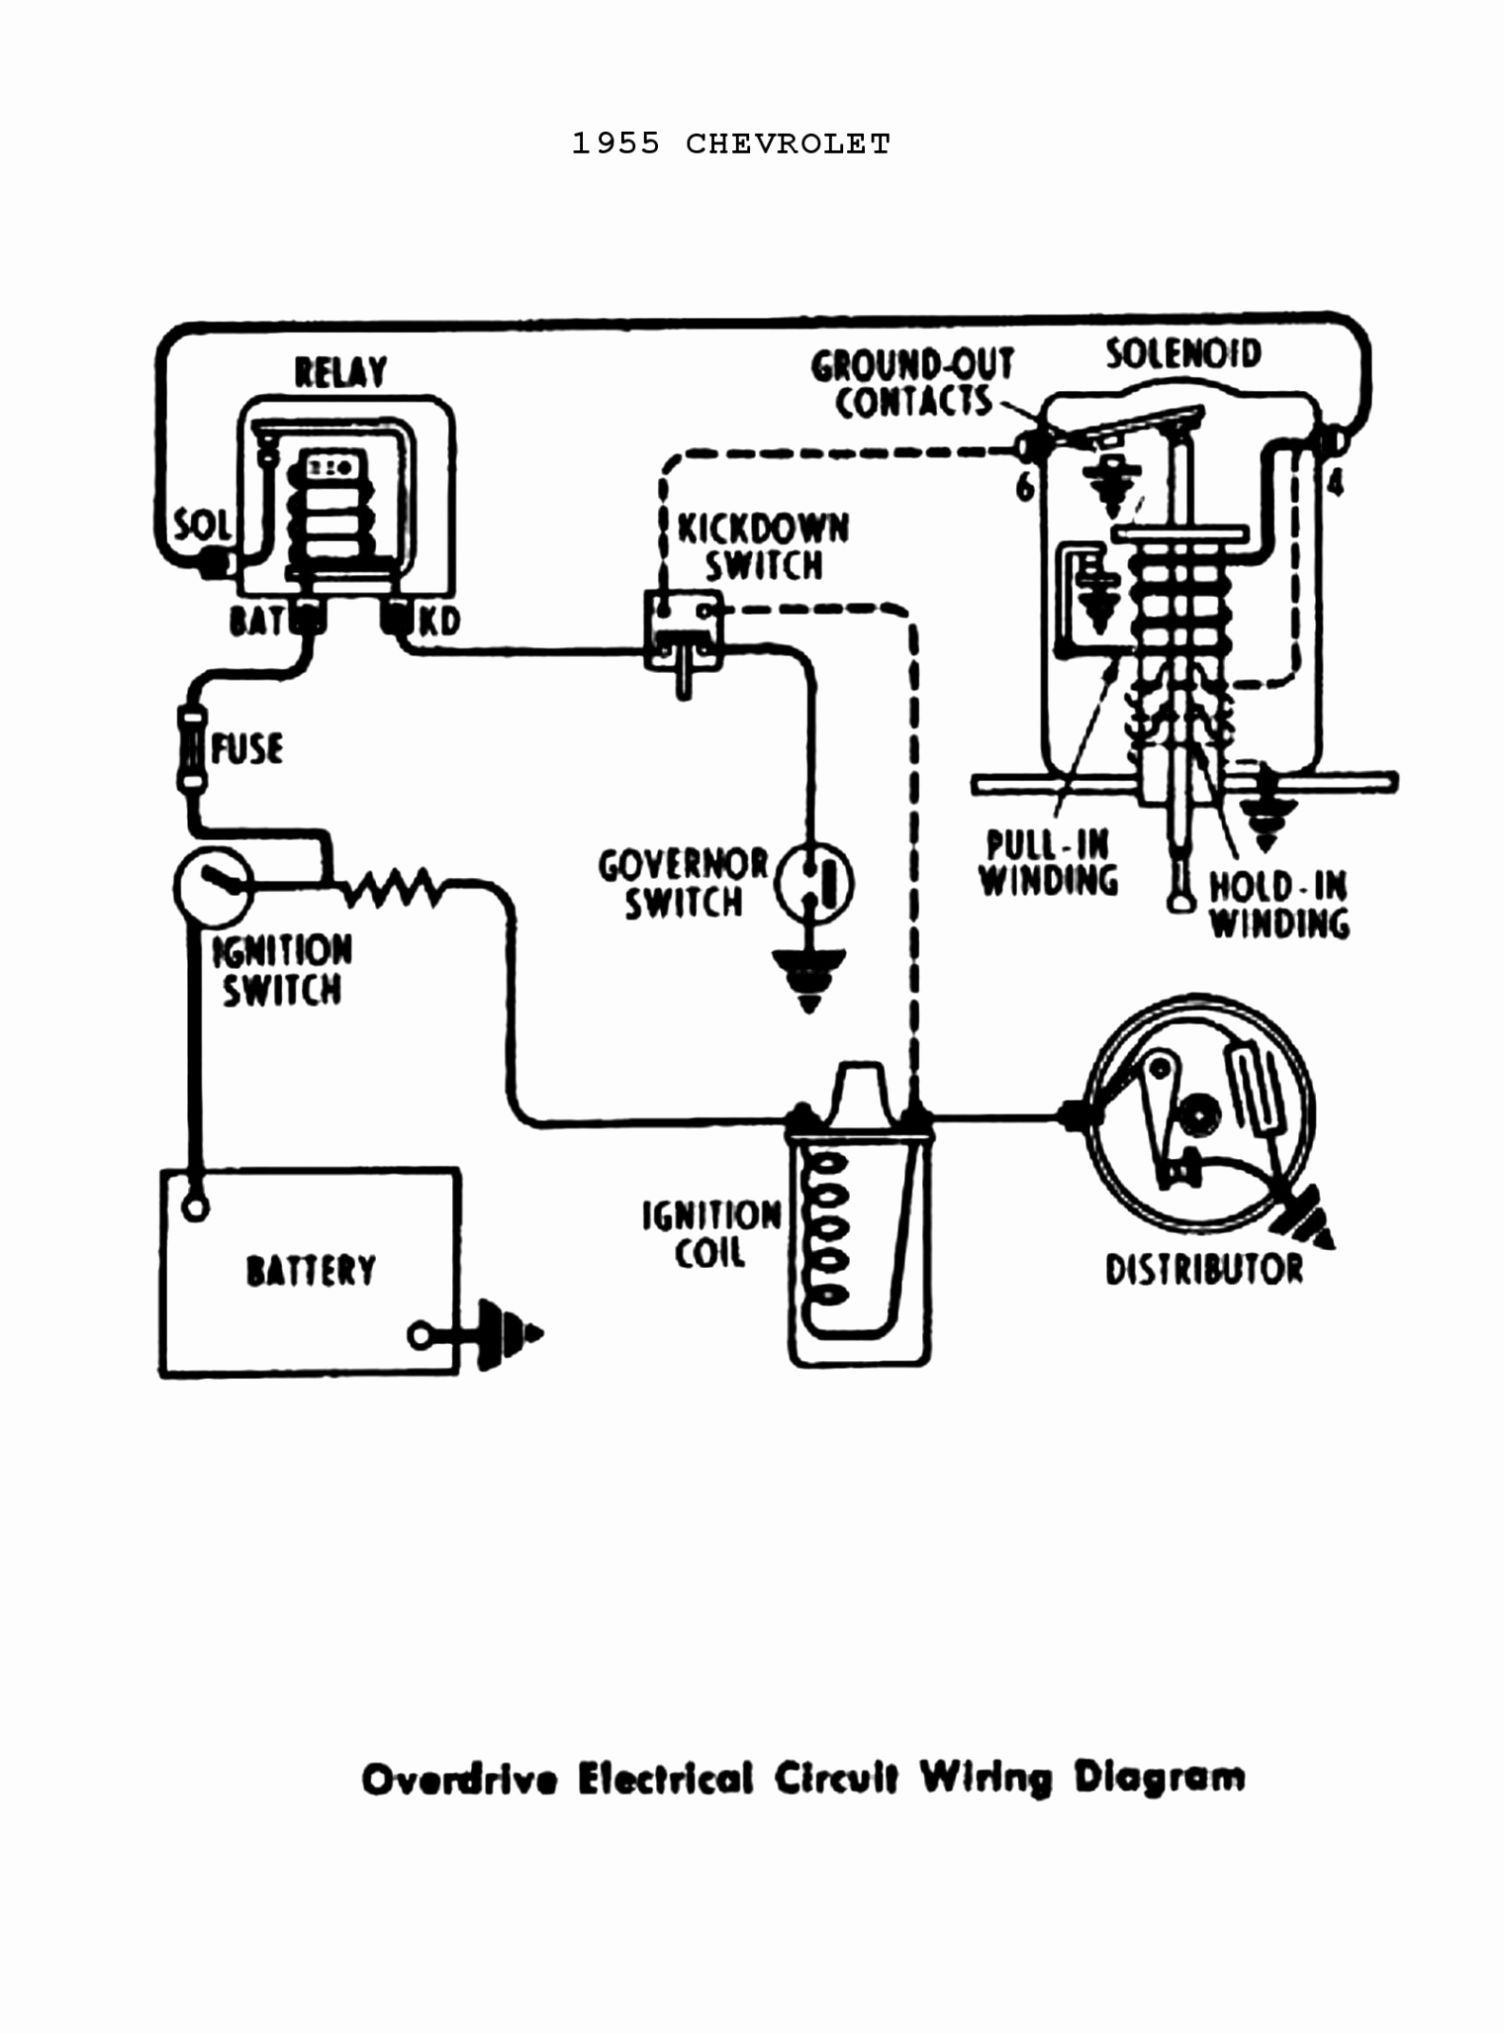 unique motorola alternator wiring diagram john deere #diagrams  #digramssample #diagramimages #wiringdiagramsample #wiringdiagram